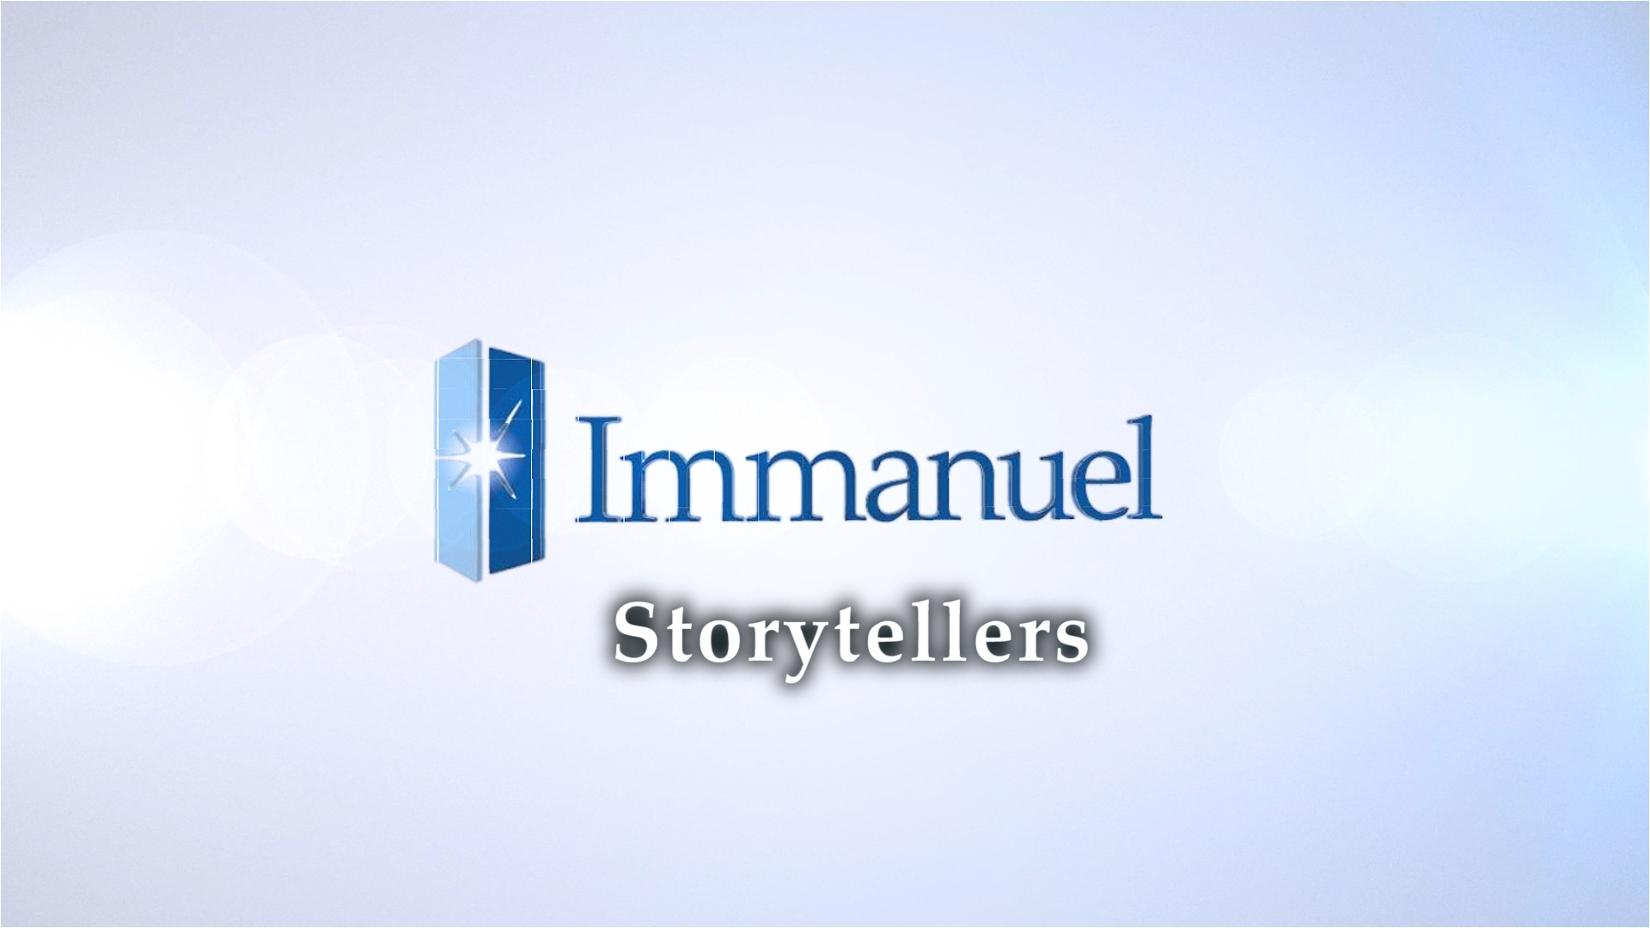 Image for Immanuel Storytellers